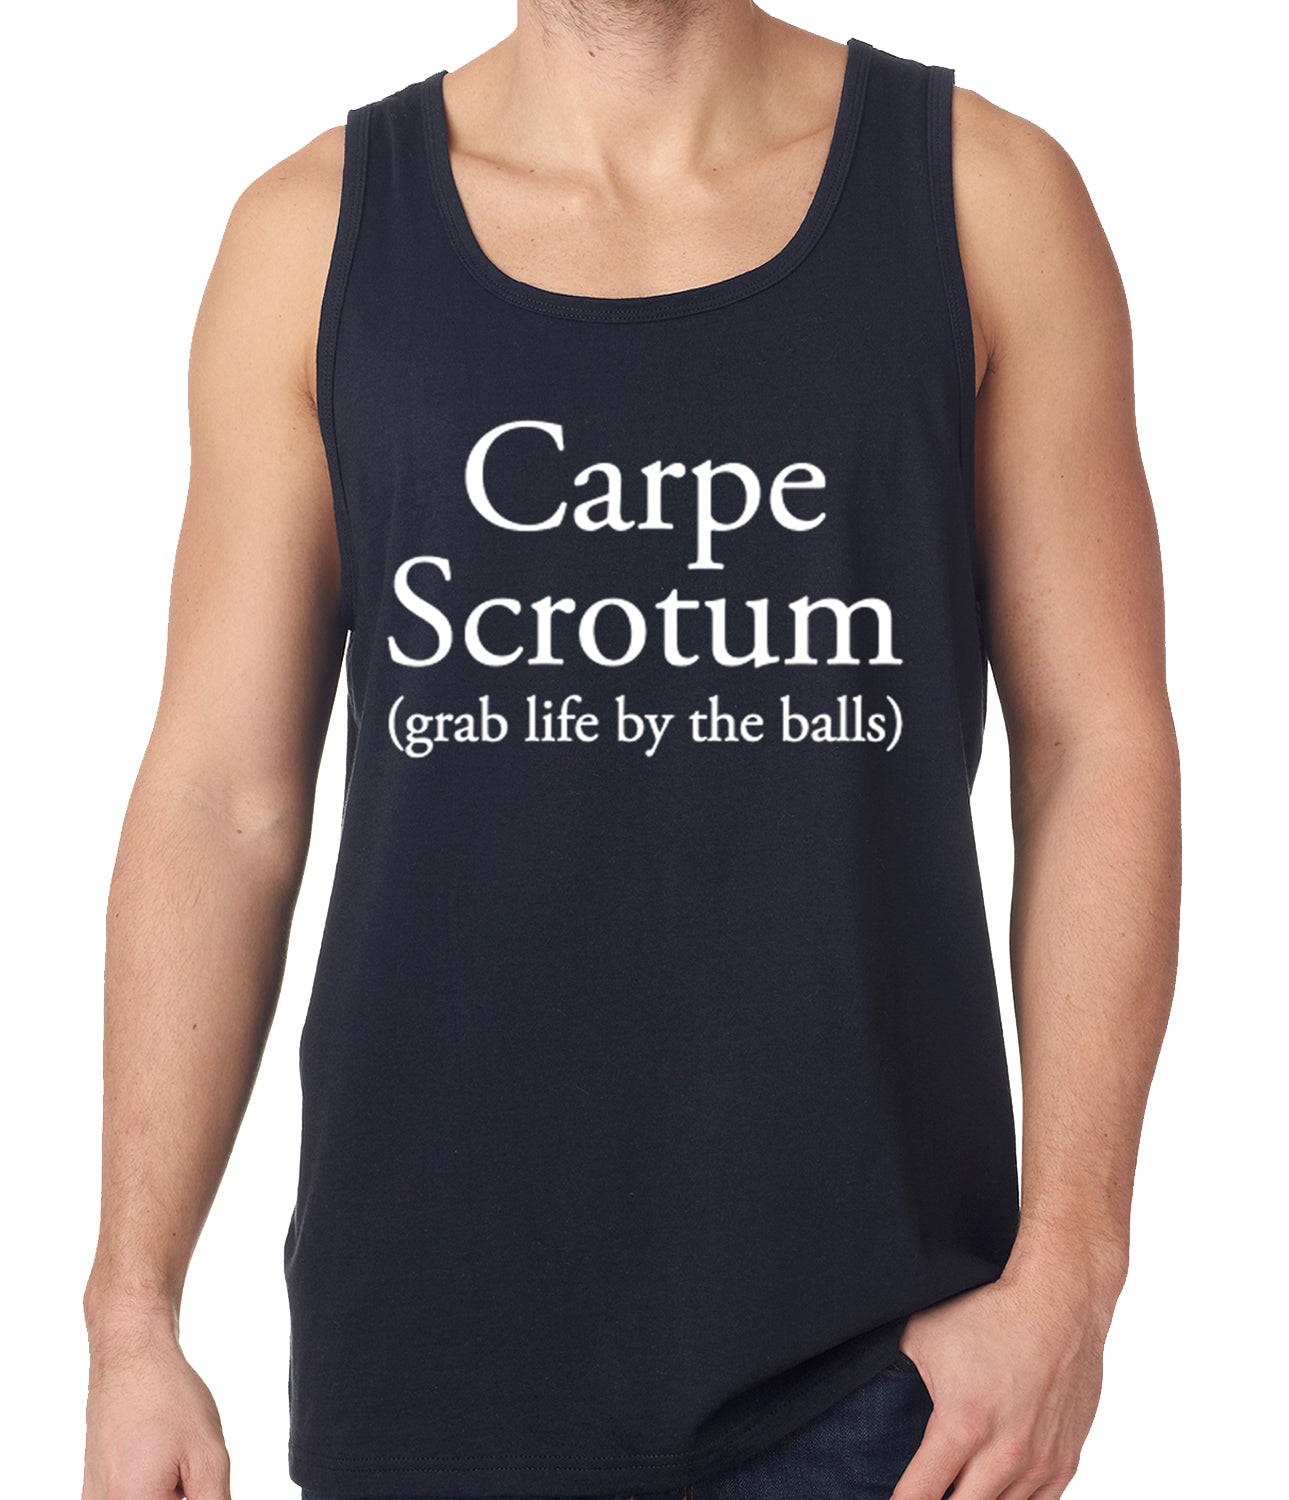 Carpe Scrotum - Grab Life By The Balls Tanktop